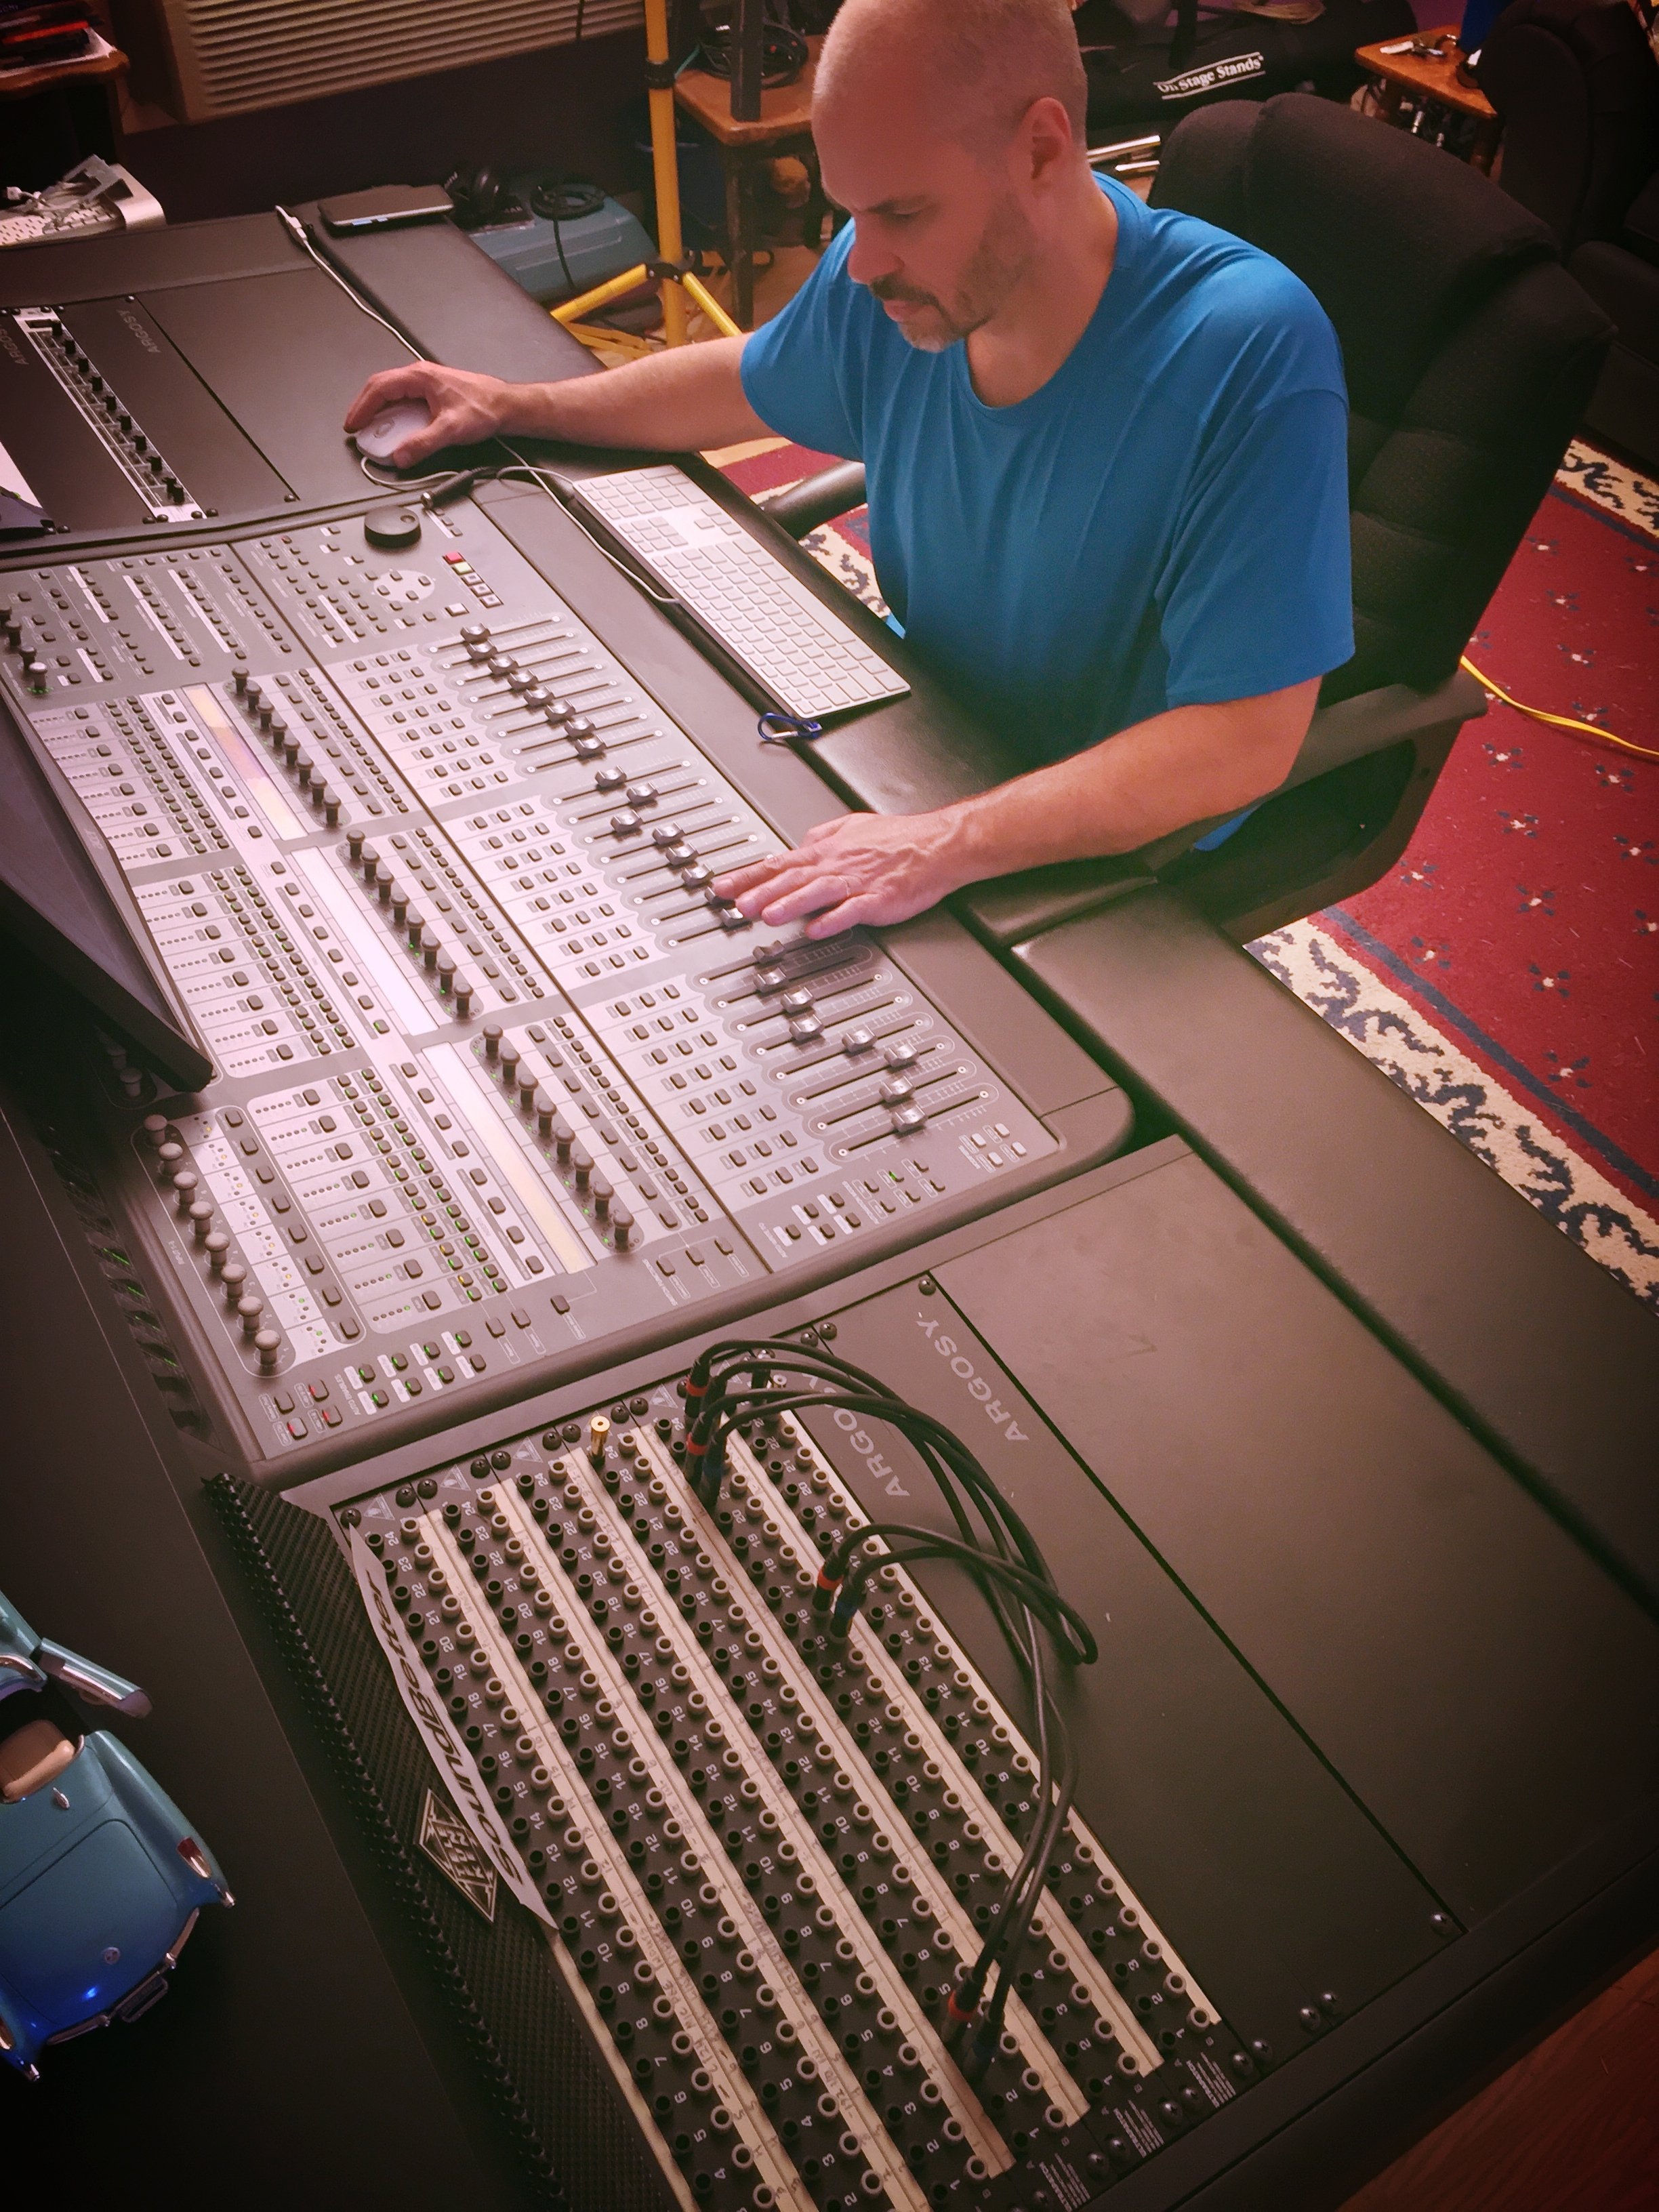 Step 3: Mixing/Mastering - Once you've approved the production, Marc will begin taking Eric's tracks and creating a final mix. Once the mix is finished, you'll get a mix for you to approve.